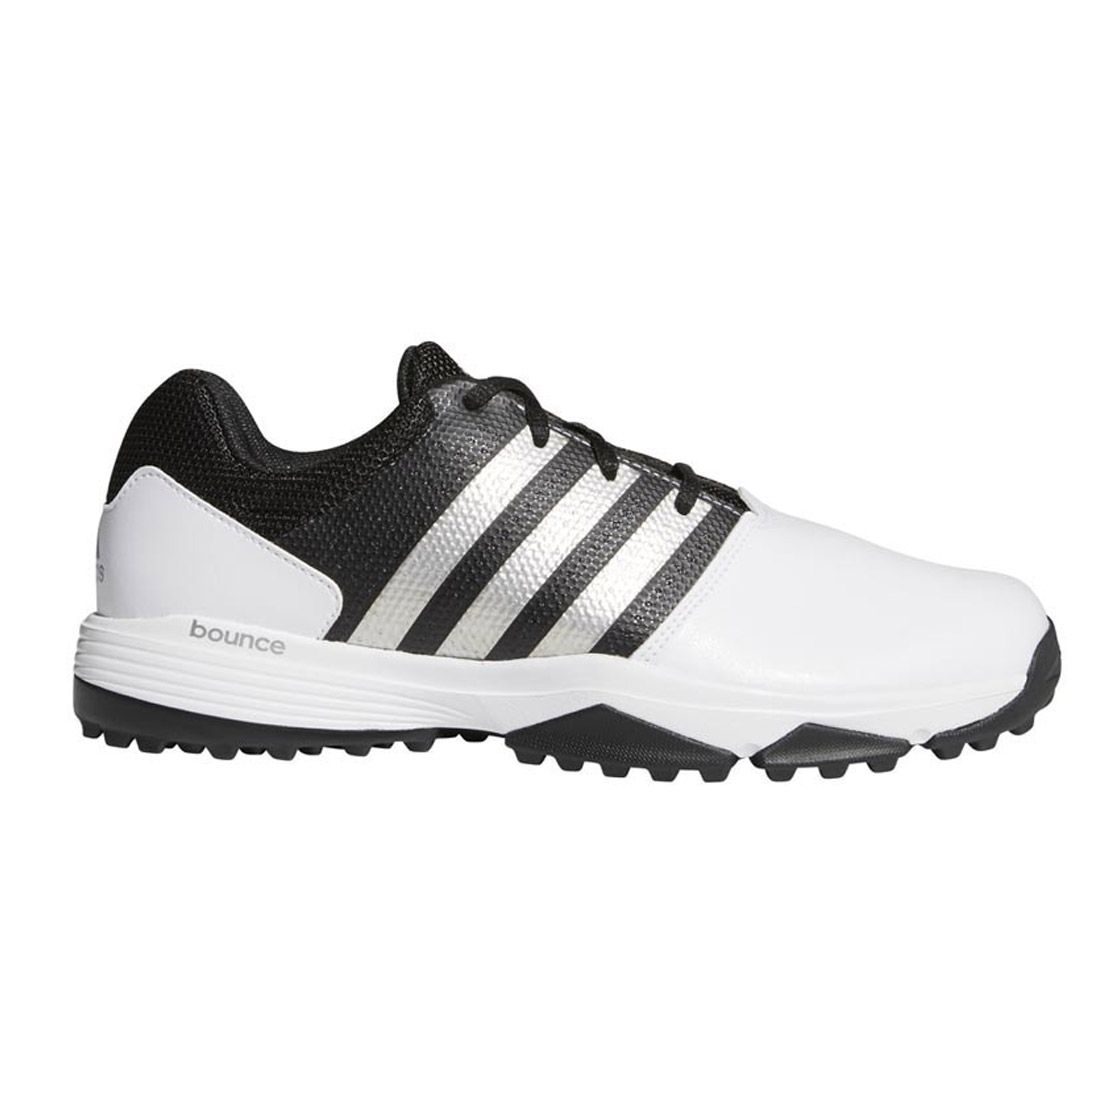 Buy Adidas 360 Traxion Golf Shoes White